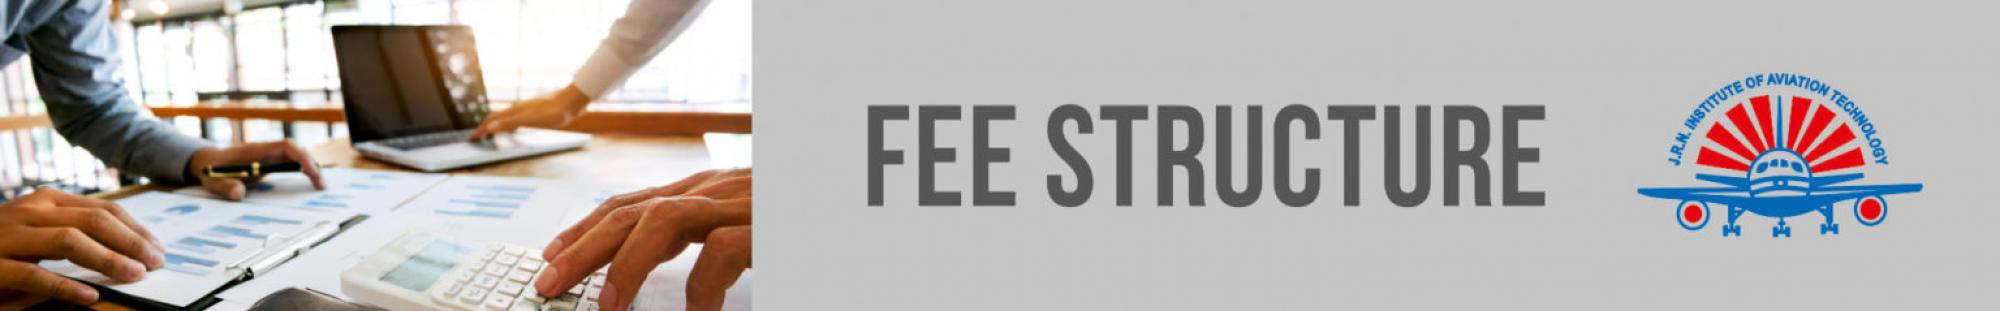 AME Fees structure